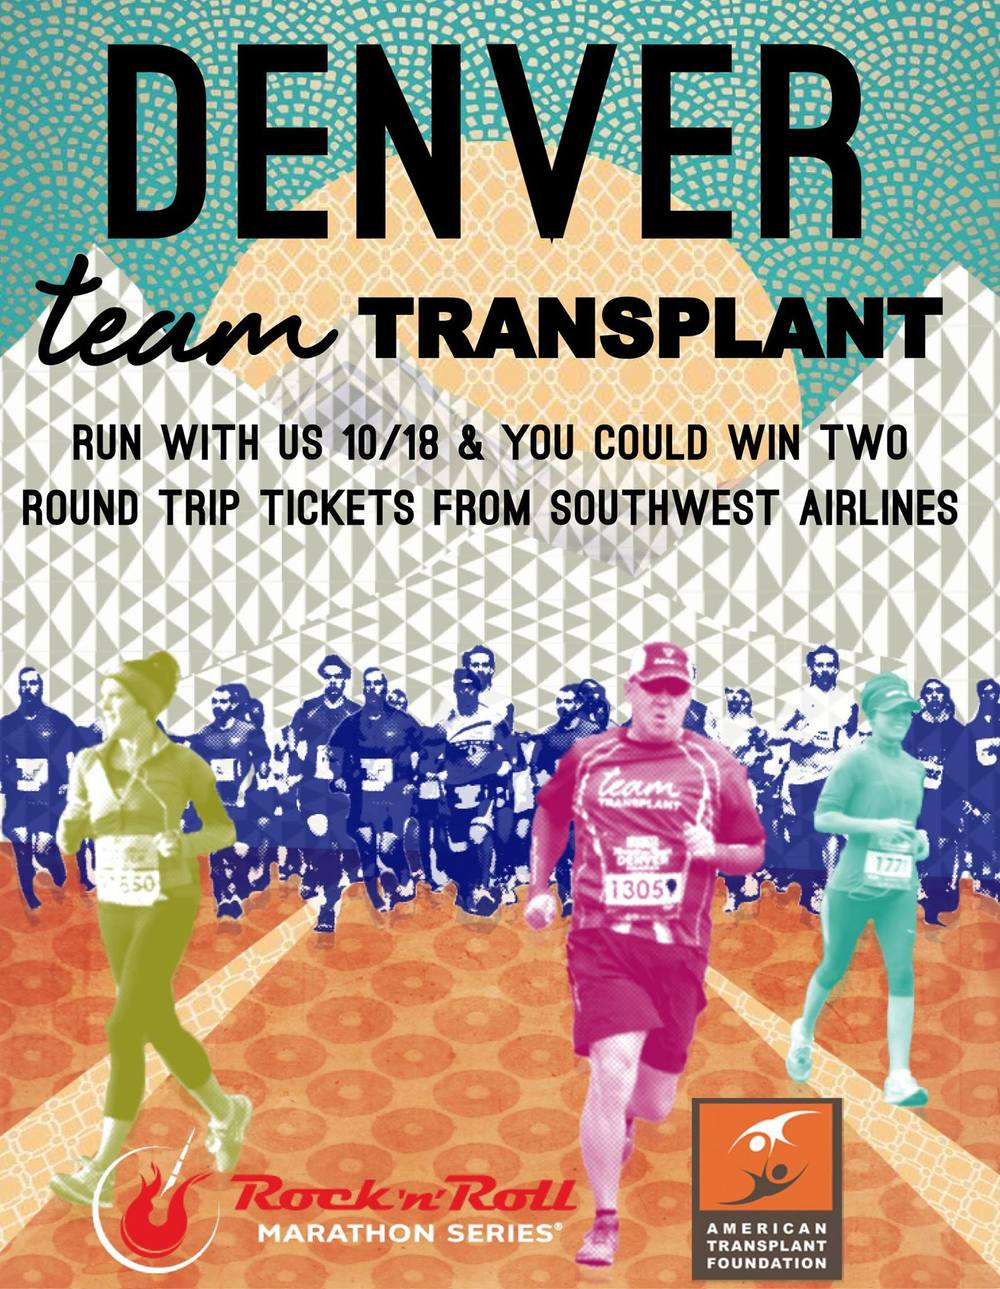 Running Flyer for the American Transplant Foundation